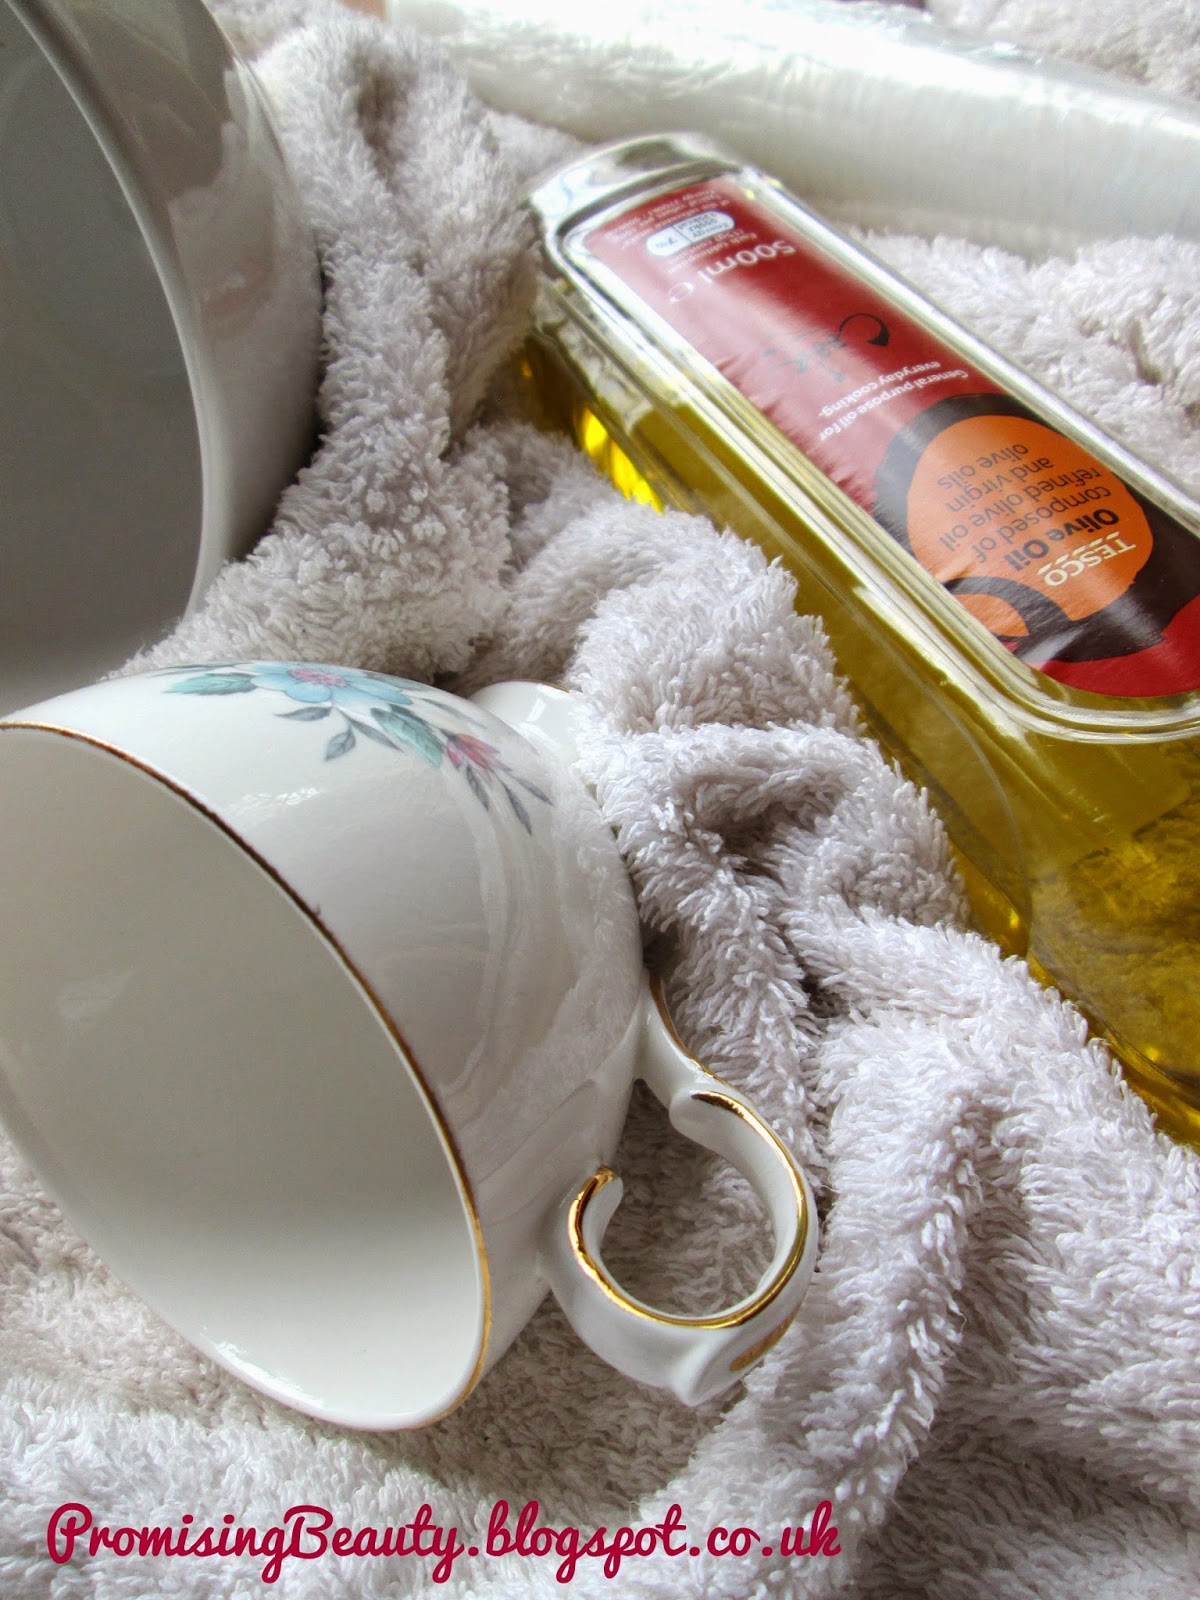 DIY oil treatment for your hair. Olive oil, cling film or seran wrap and fluffy white towels. Bone China teacup with gold edging.